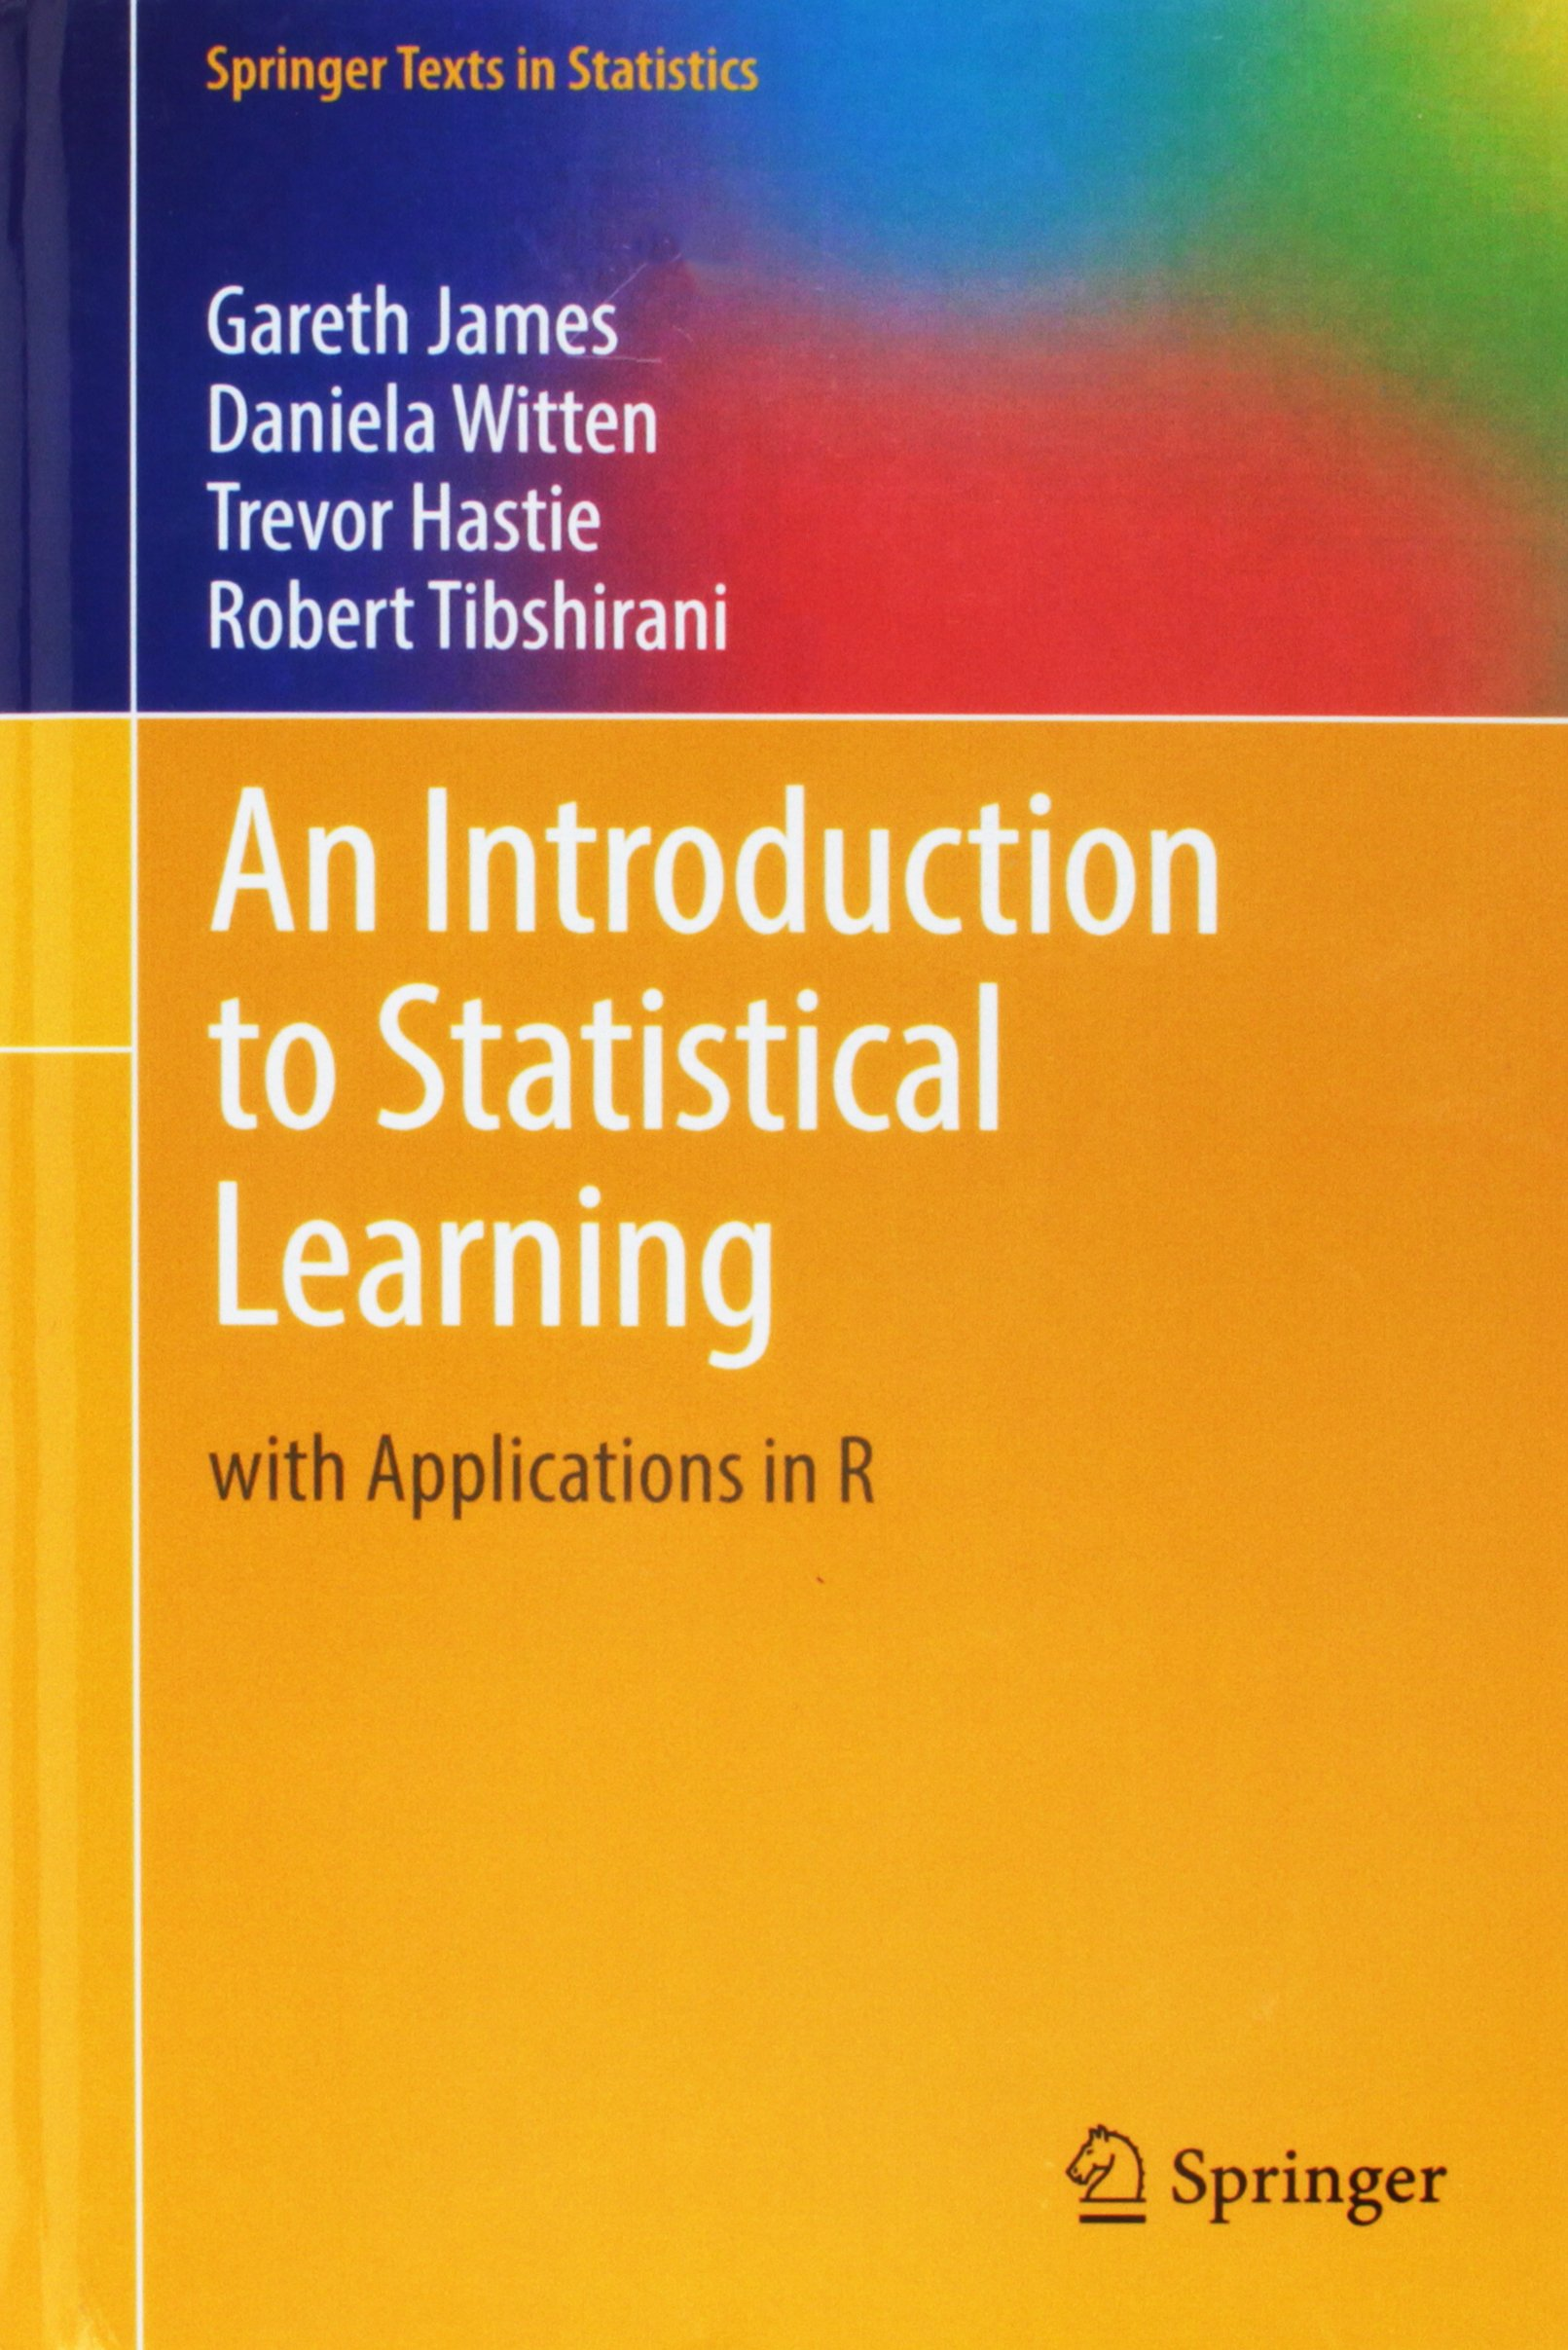 An Introduction to Statistical Learning: with Applications in R (Springer Texts in Statistics) by Springer